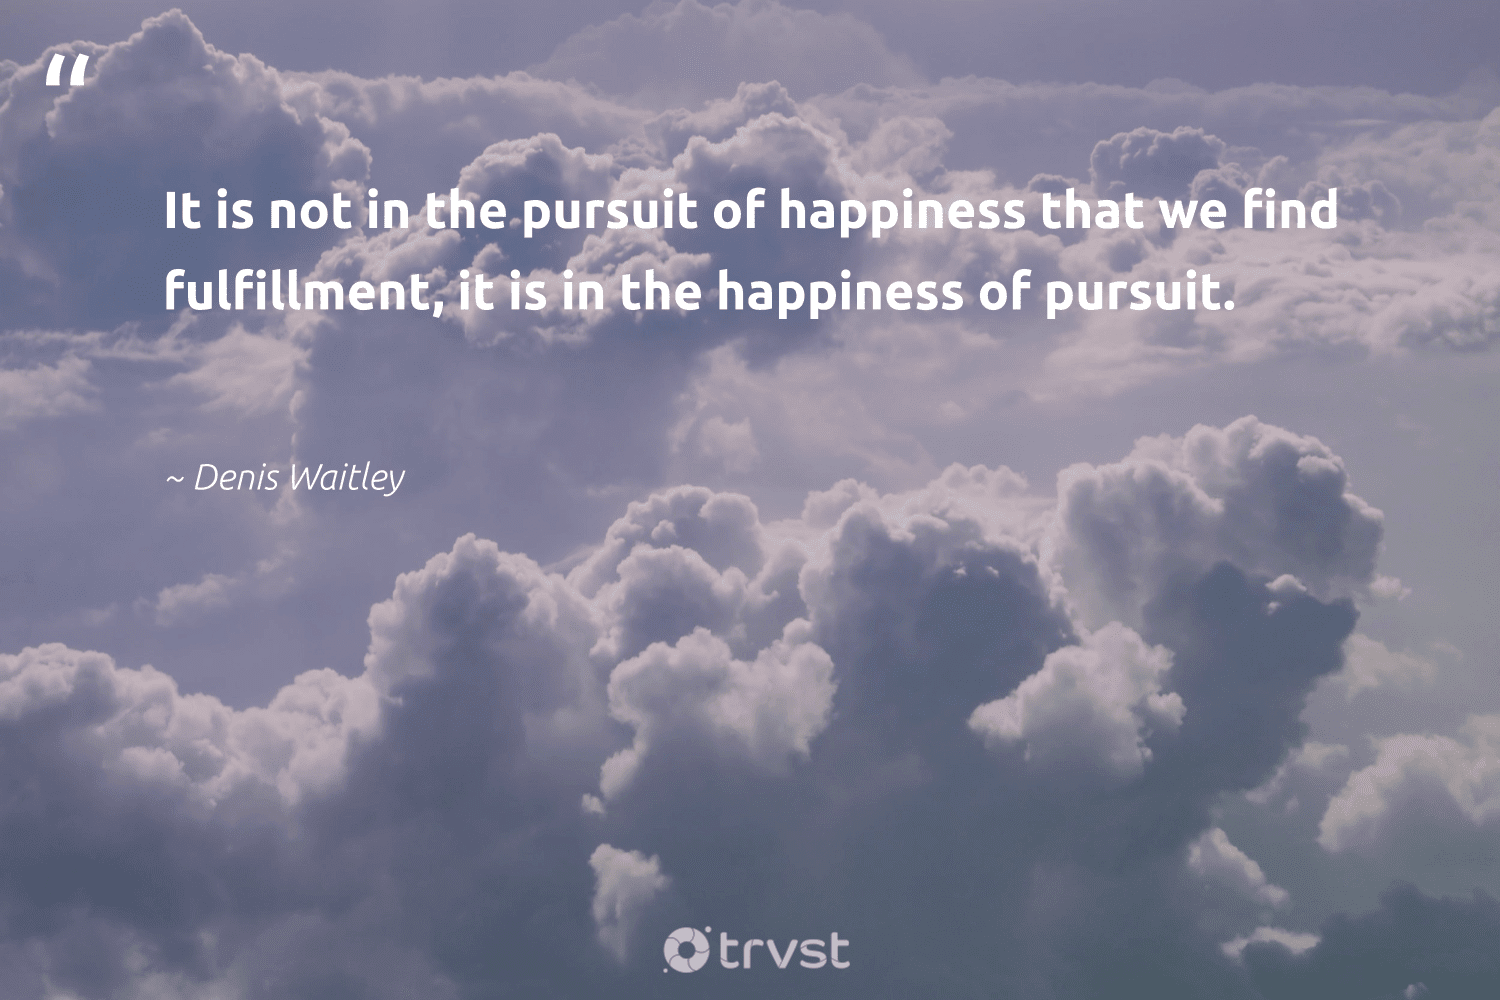 """""""It is not in the pursuit of happiness that we find fulfillment, it is in the happiness of pursuit.""""  - Denis Waitley #trvst #quotes #happiness #changemakers #bethechange #mindset #socialchange #health #planetearthfirst #nevergiveup #impact #togetherwecan"""